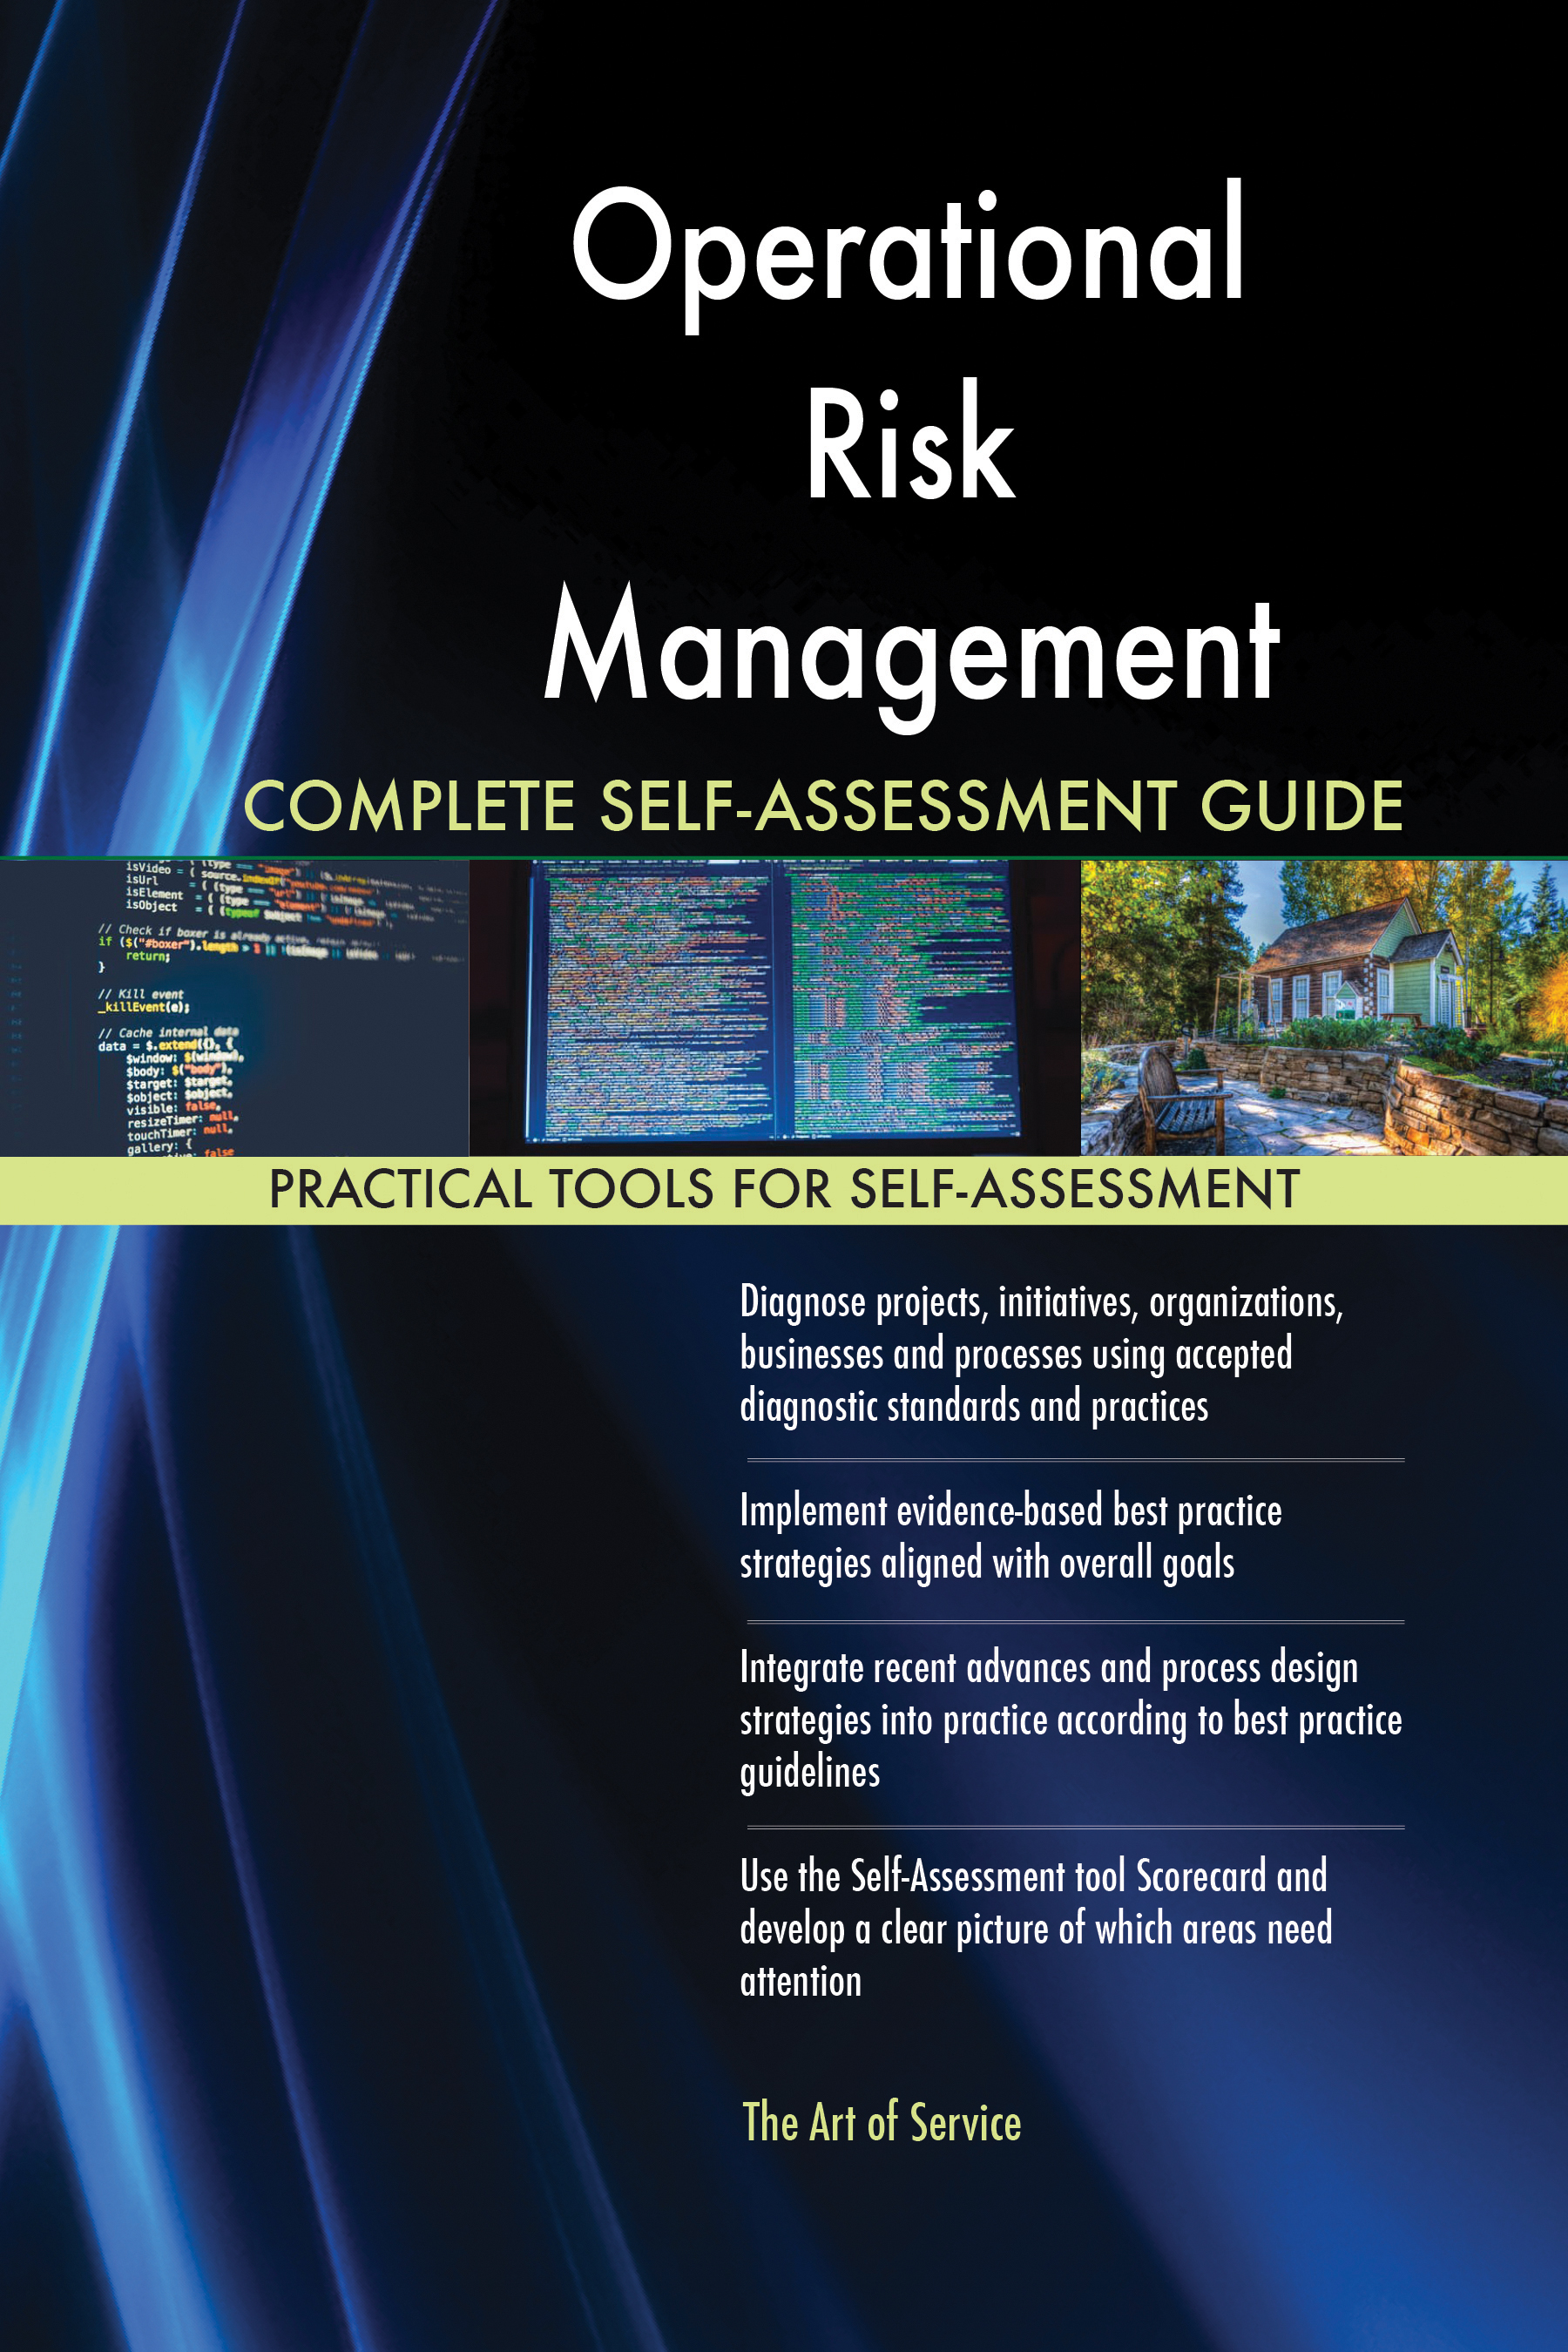 self assessment fundamentals of operations management for A large number of people are wondering whether operations management is a viable career option for them find out if its right for you.